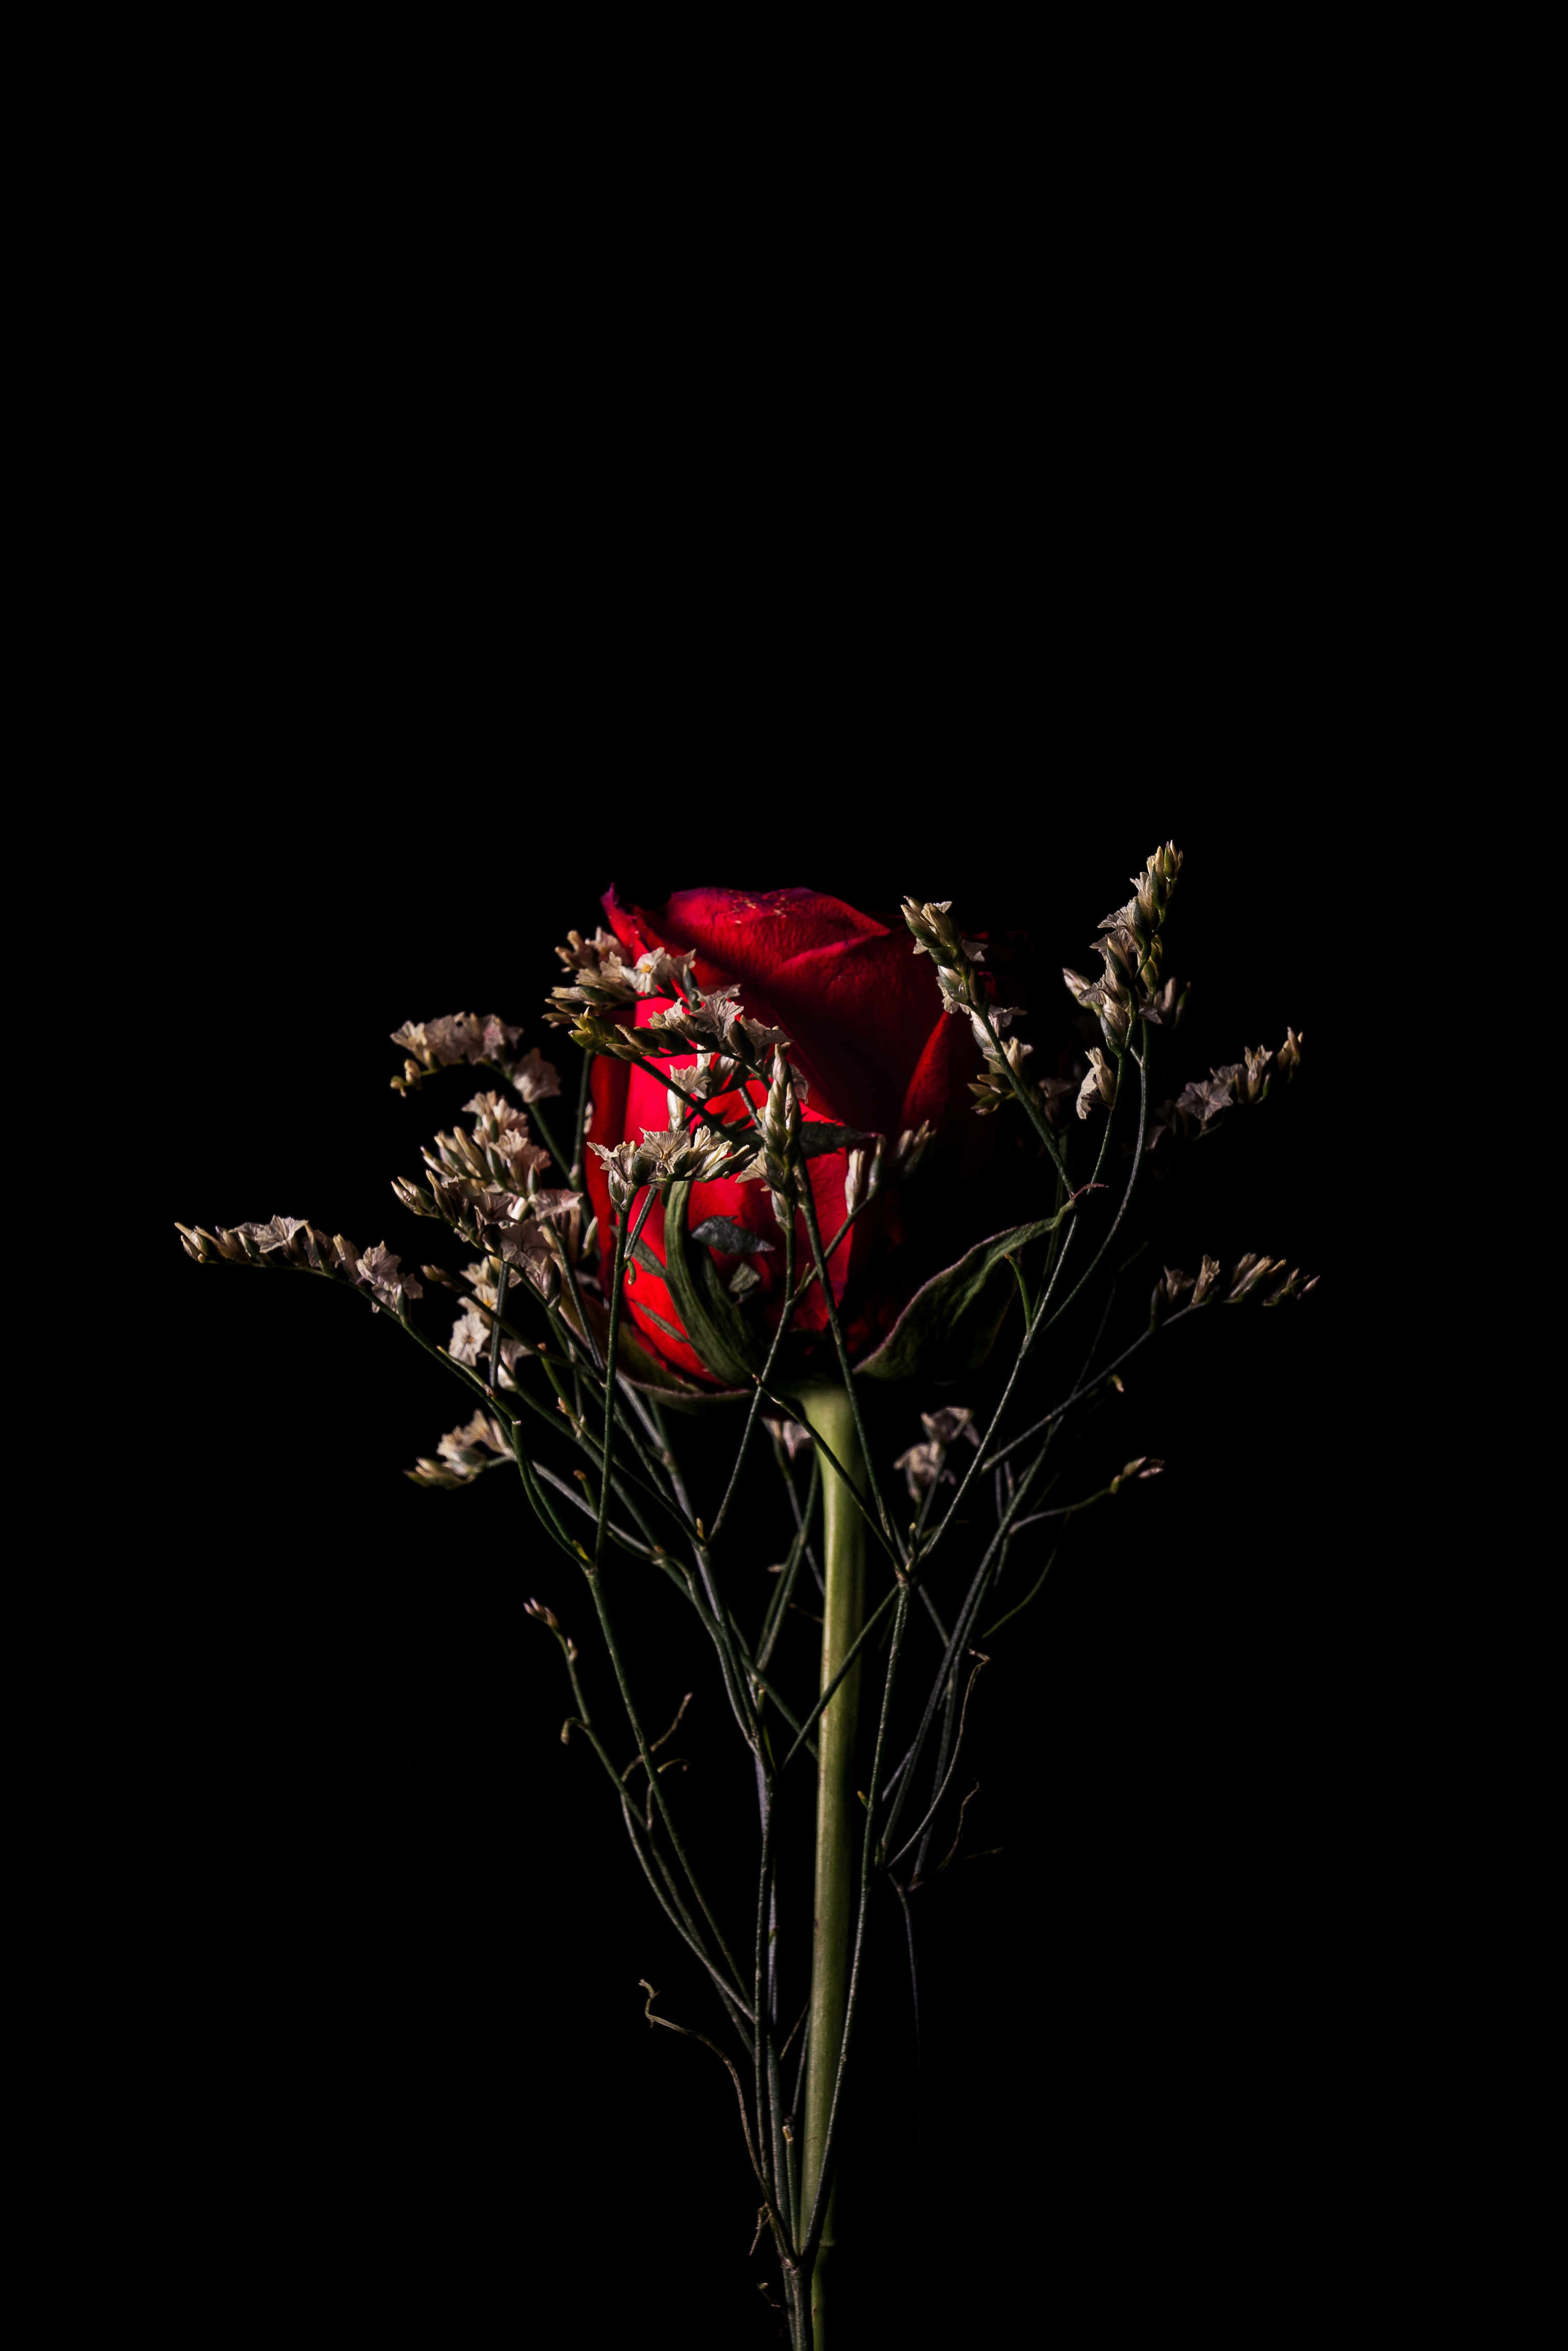 red rose behind white flowers in black background